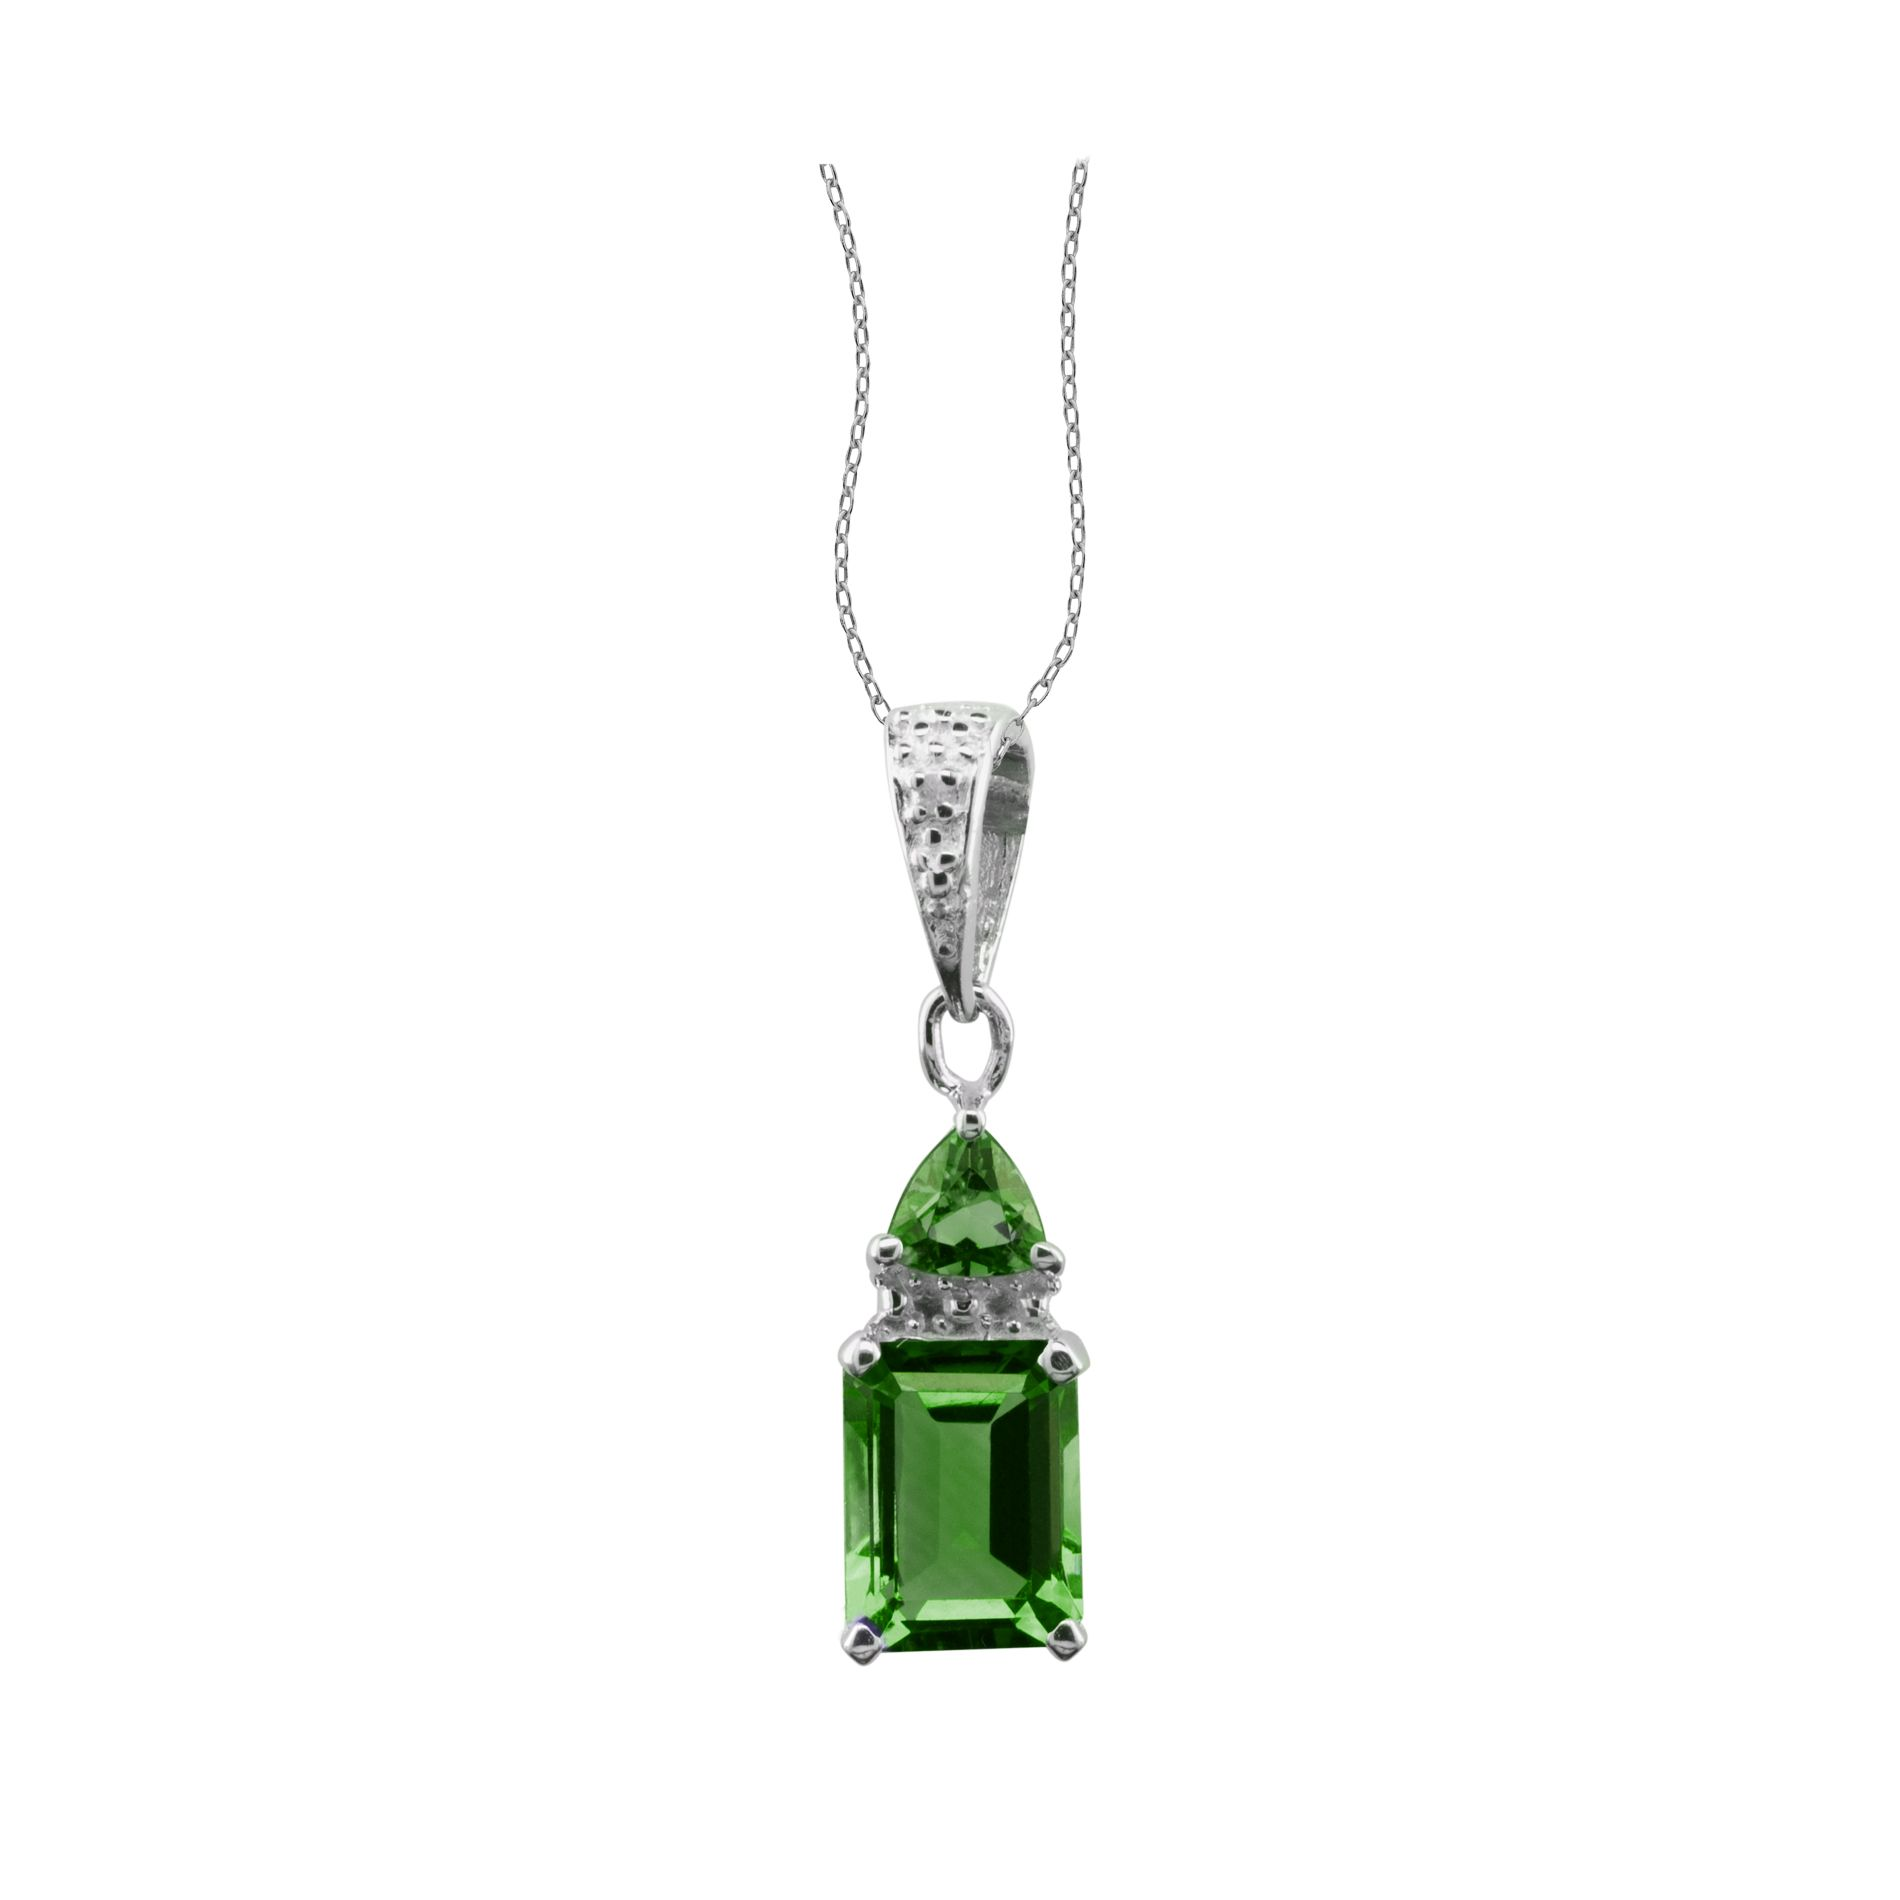 Lab Created Emerald and Diamond Accent Pendant Sterling Silver                                                                   at mygofer.com